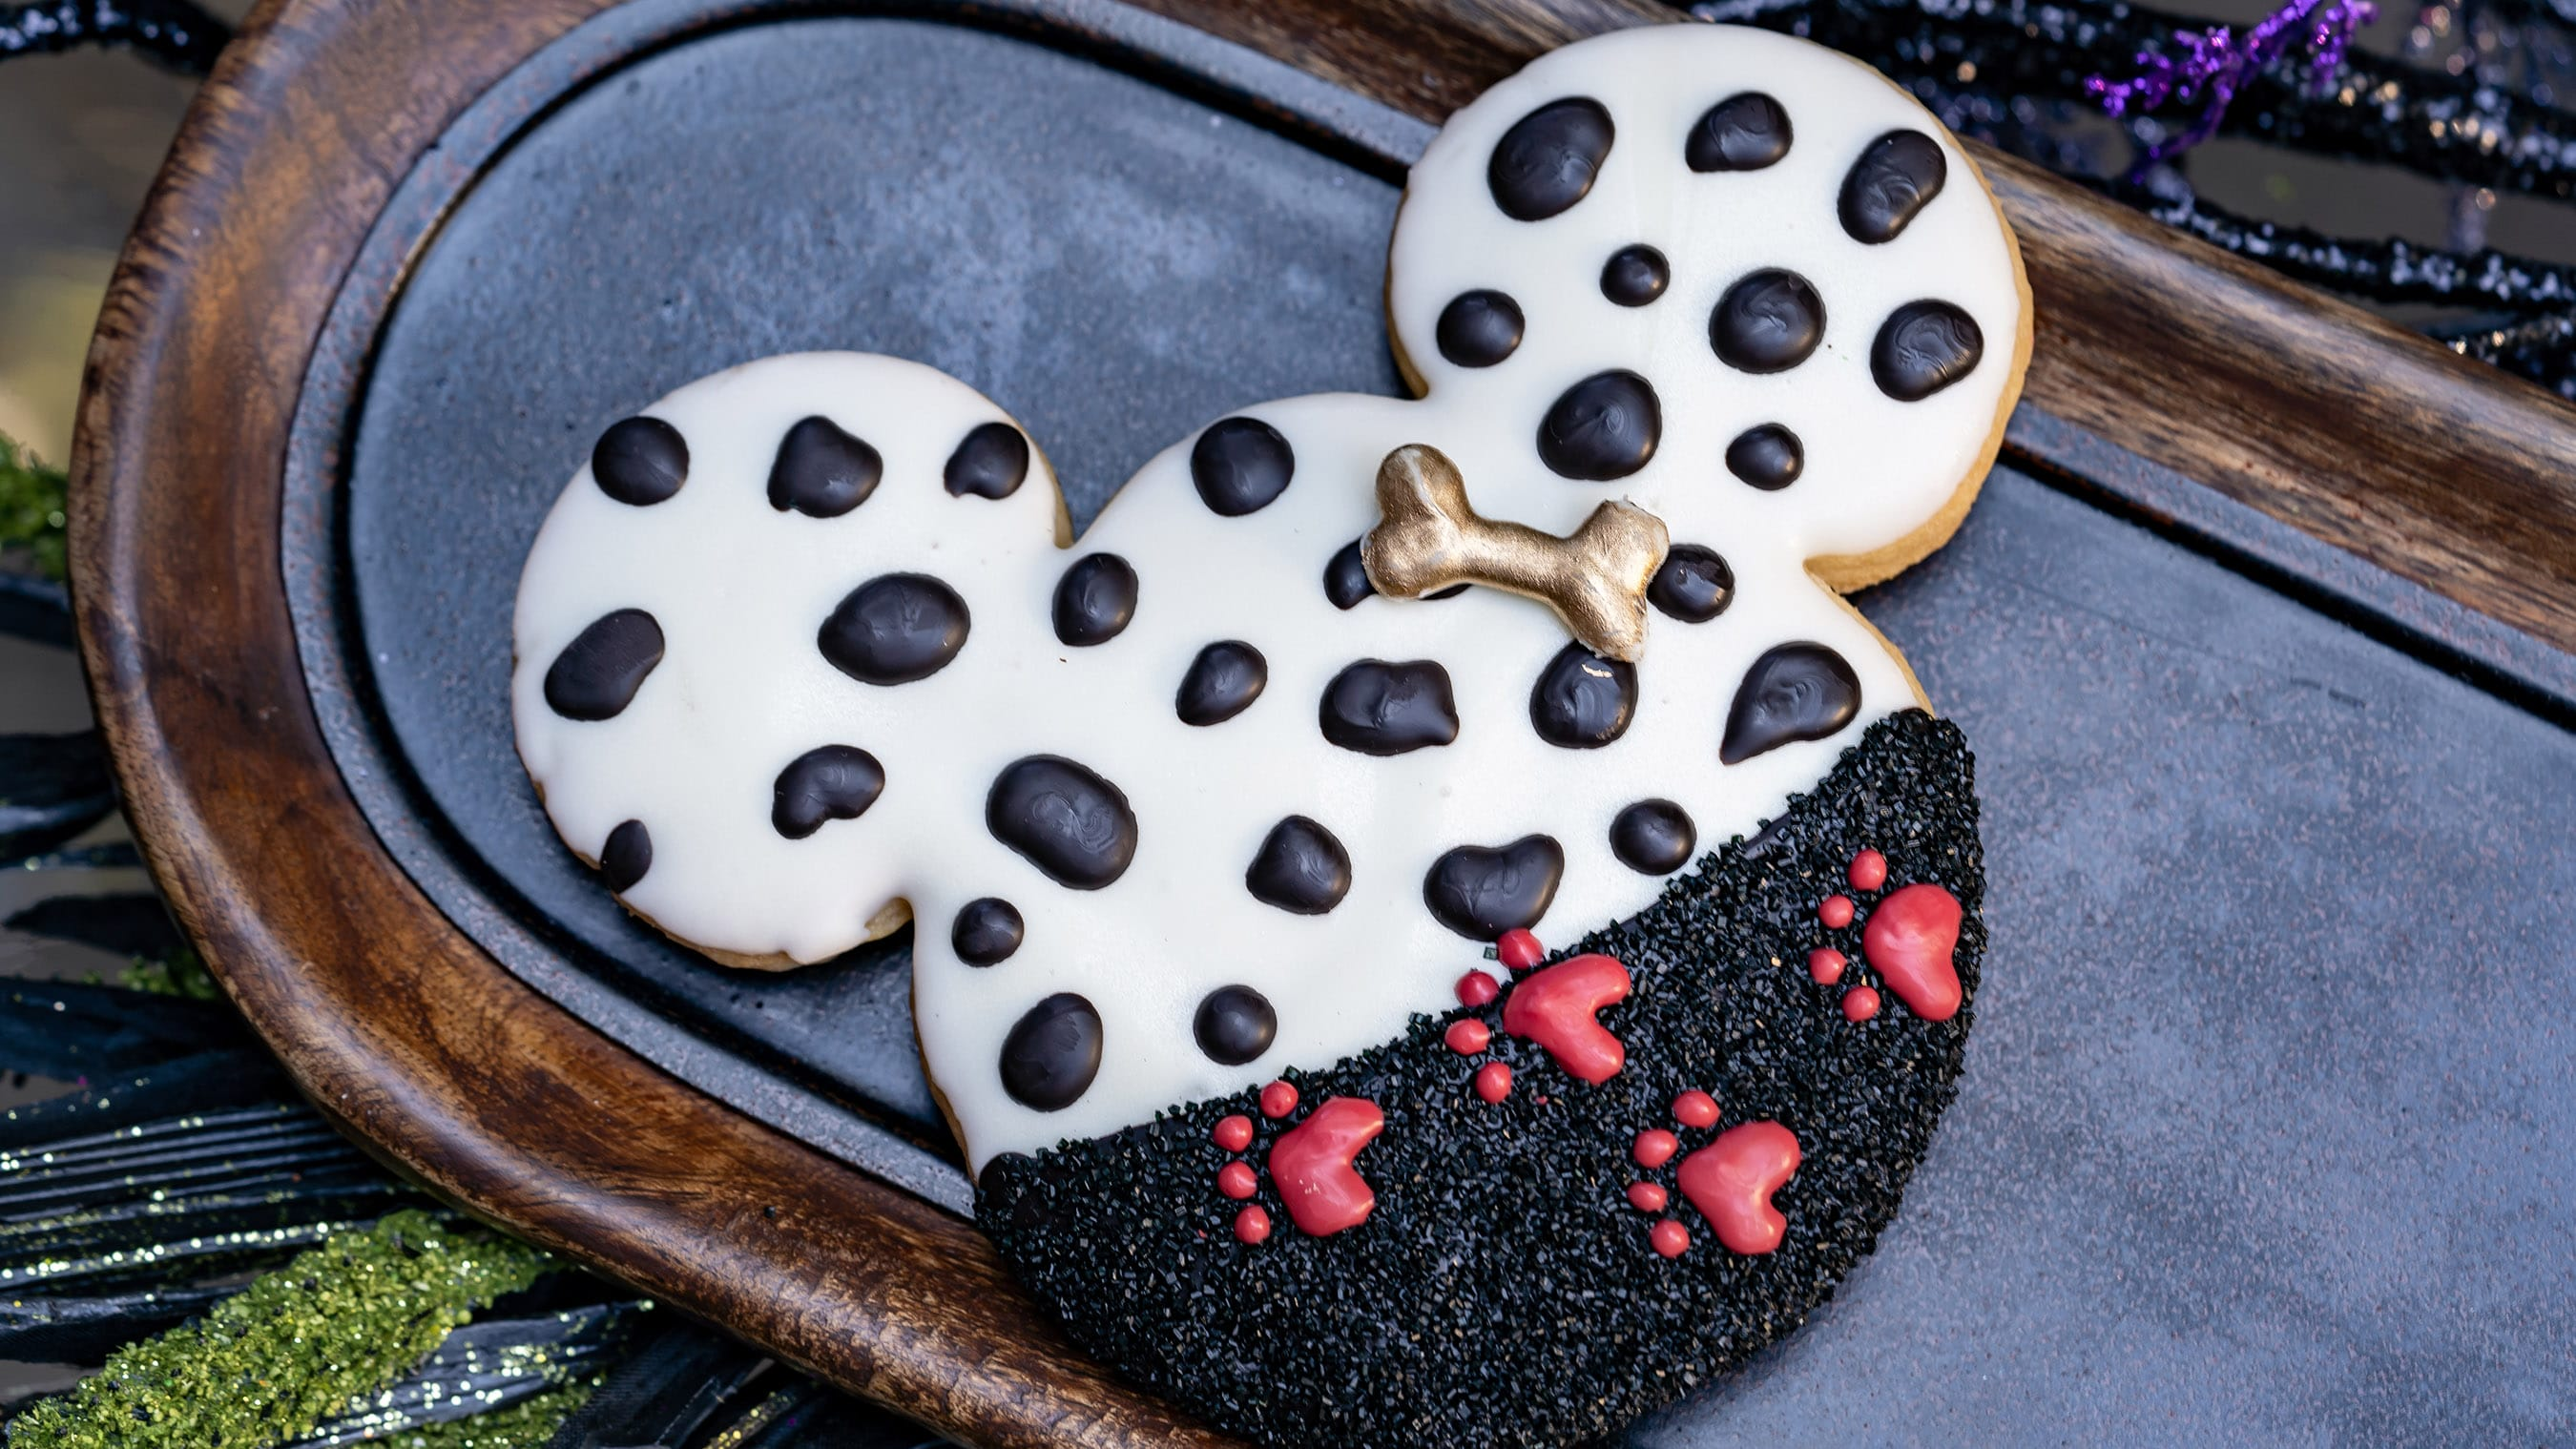 A cookie shaped like a Mickey head with dalmatian spots and red footprints.